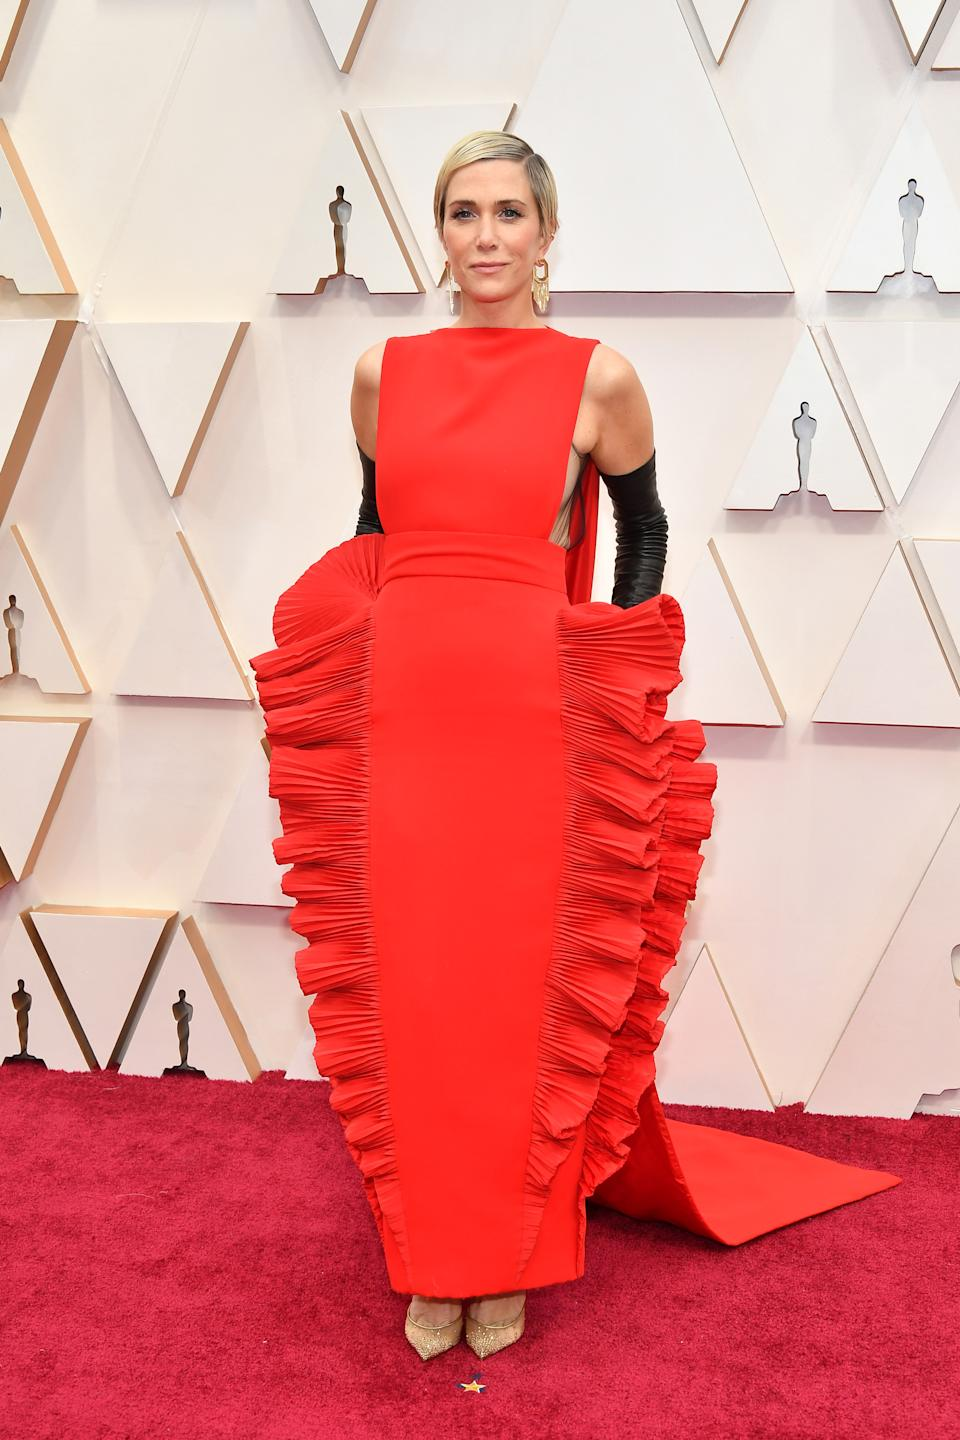 """The """"Bridesmaids"""" star and """"Saturday Night Live"""" alum opted for a high fashion look in a bold red gown with ruffled detailing."""